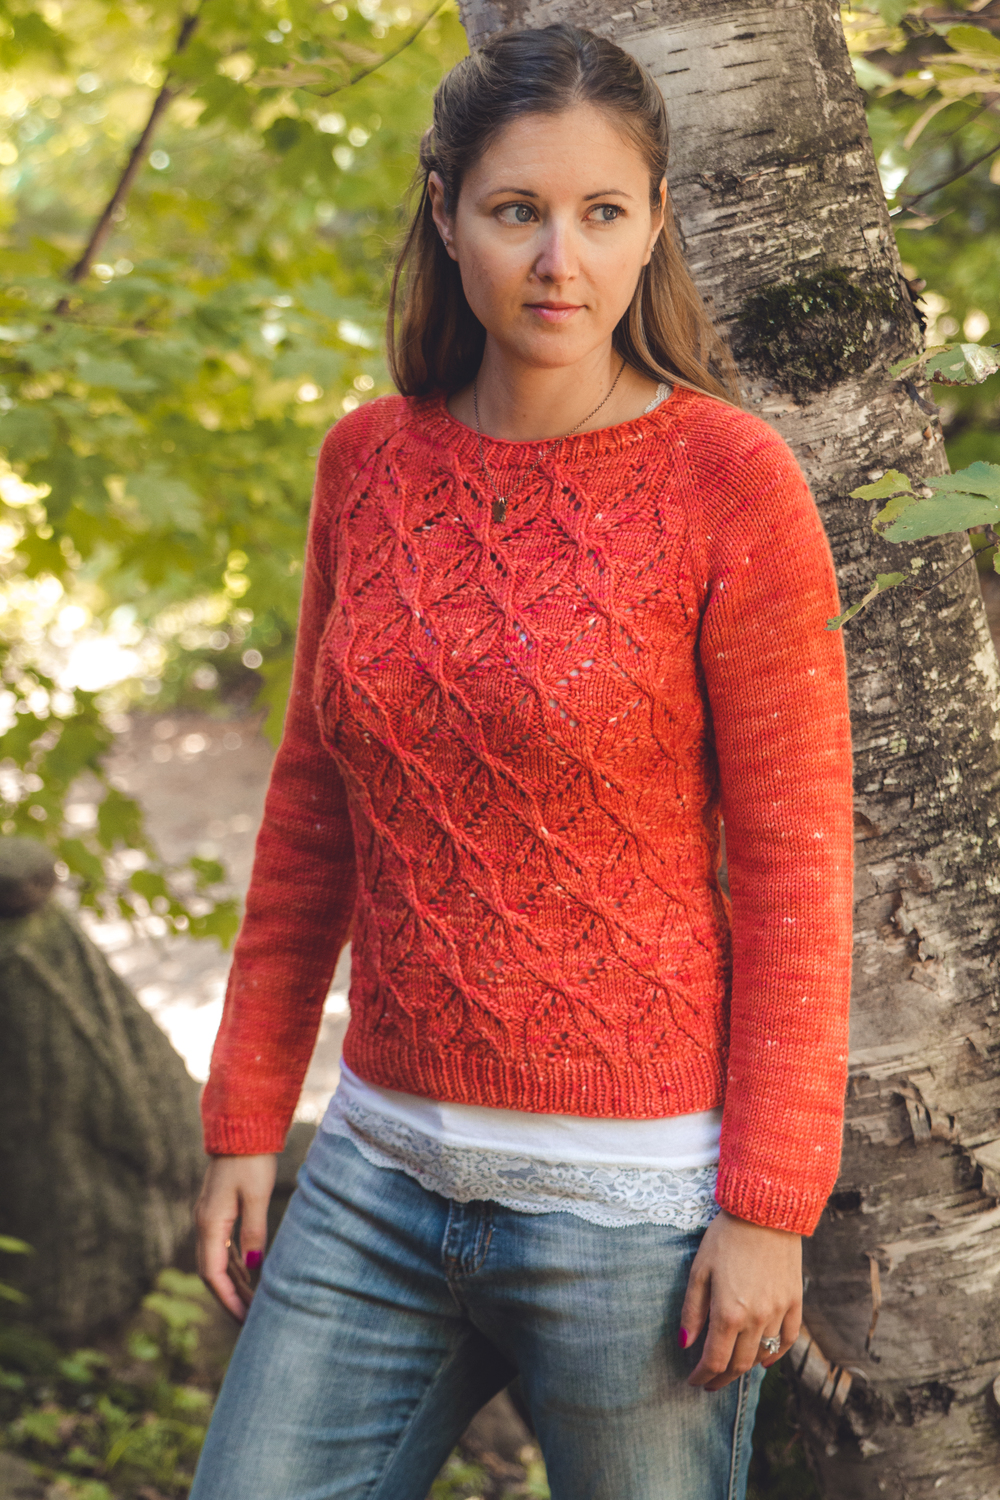 Dragonflies Jumper, by Joji Locatelli, in Front Porch Fibers DK MCN, coral